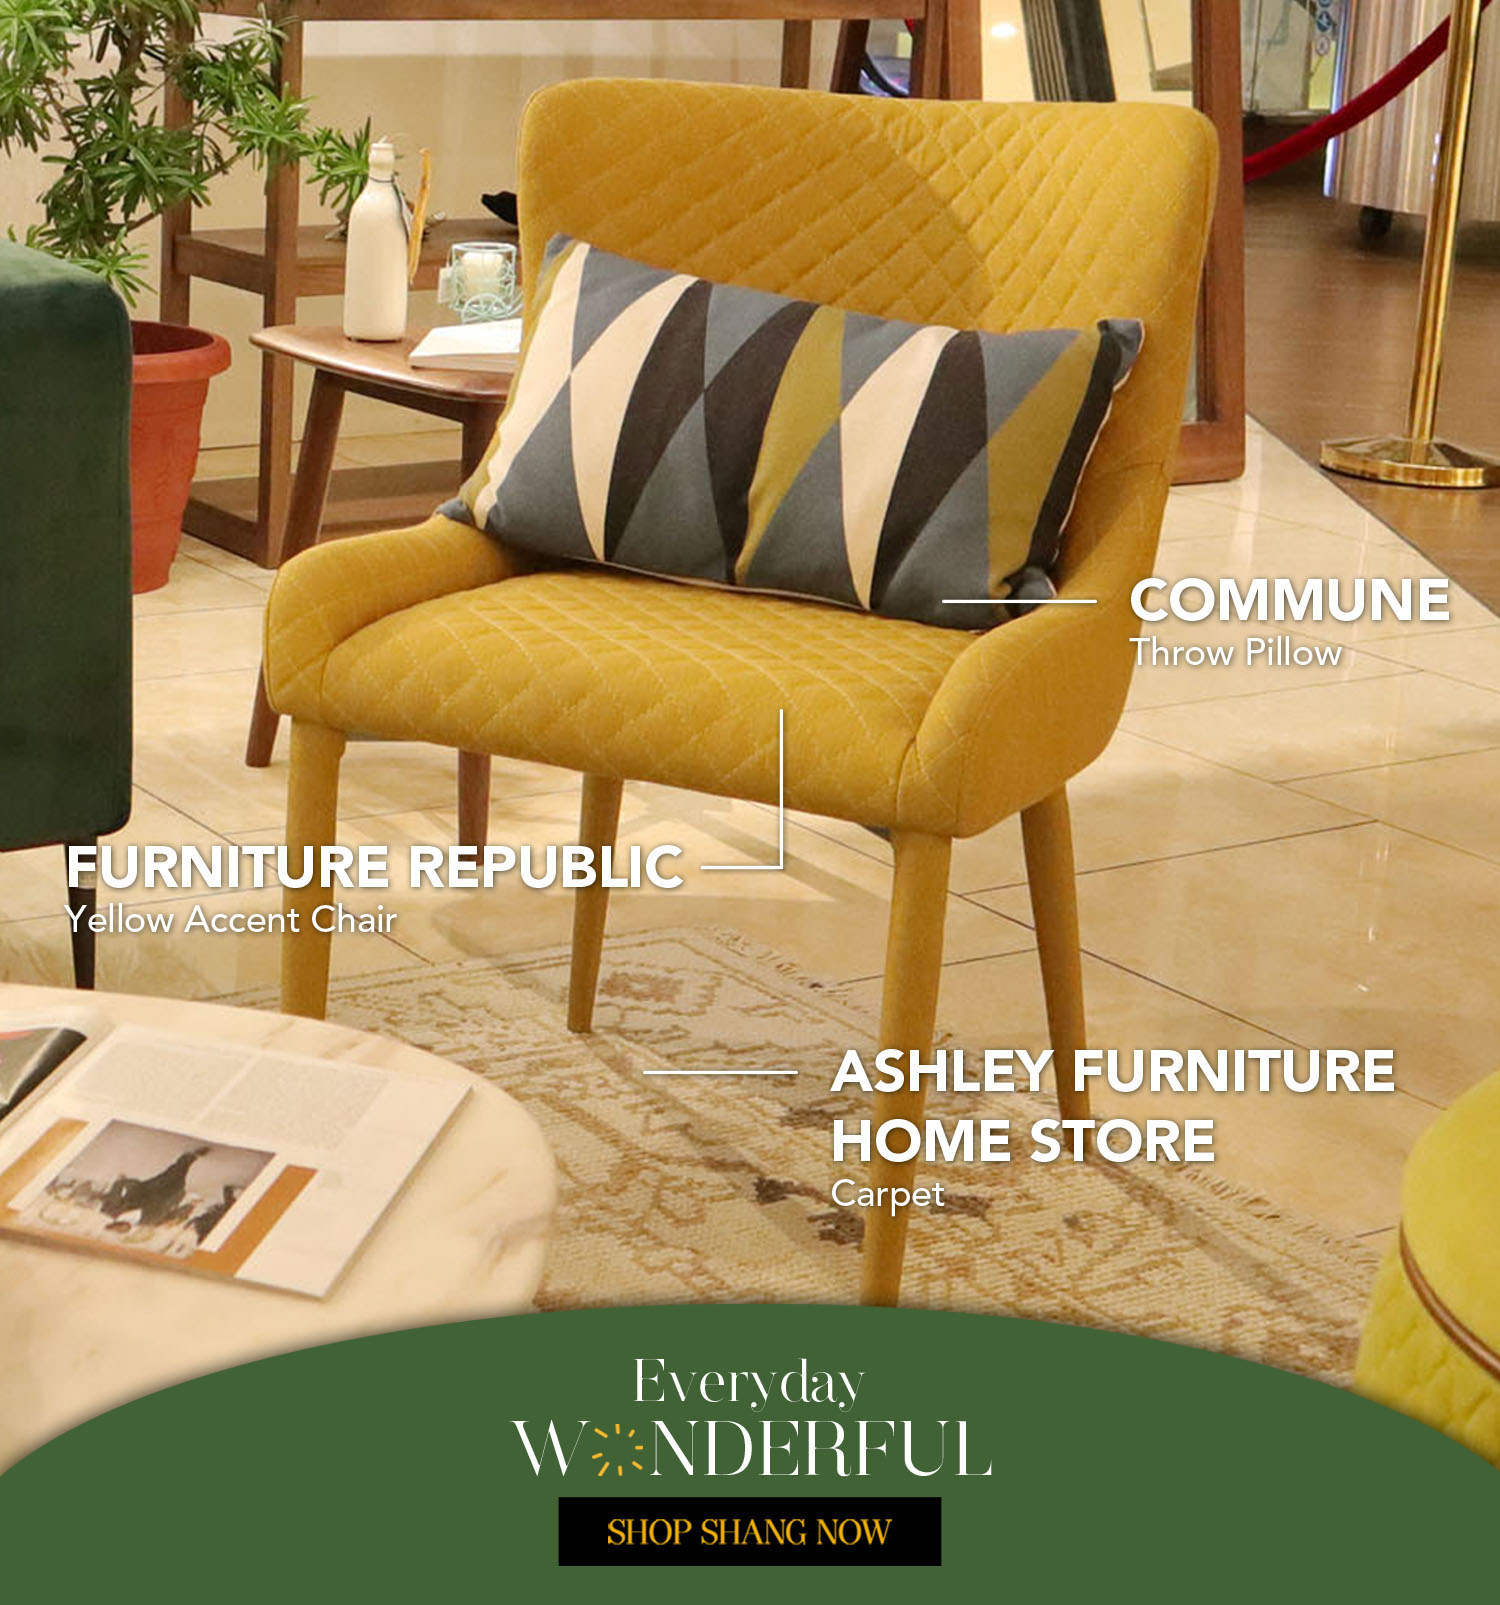 Throw Pillow from Commune _Yellow Accent Chair from Furniture Republic_Carpet from Ashley Furniture Home Store